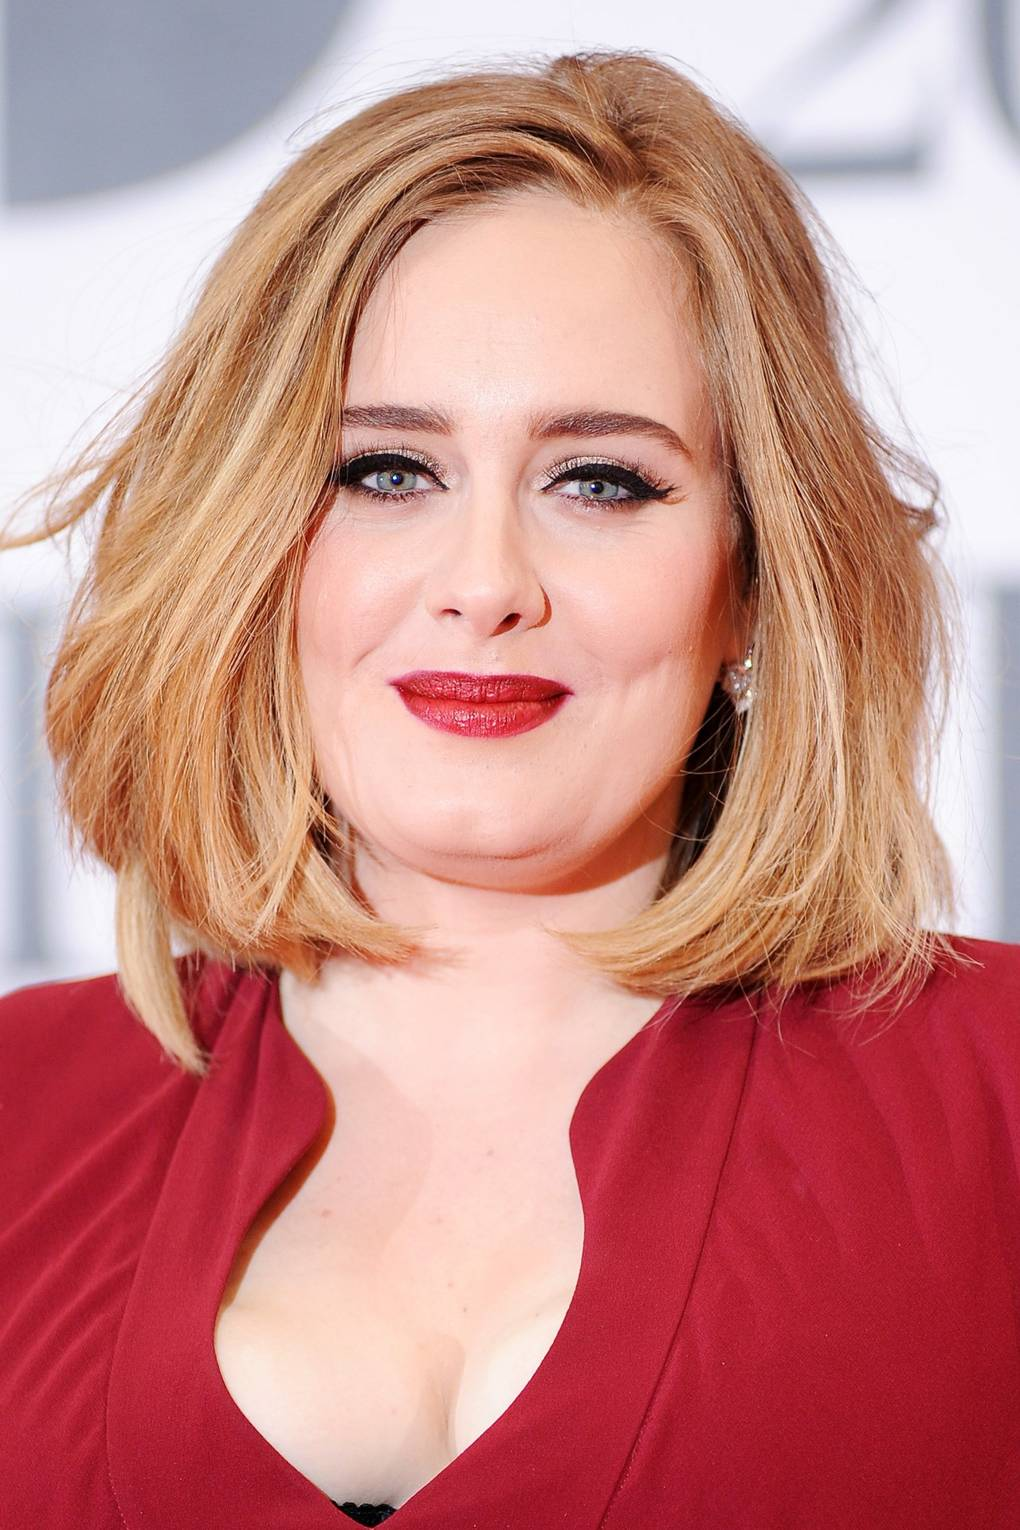 Adele Hairstyles & Beauty Looks 2017 - Look Book Pictures & Photos | Glamour UK